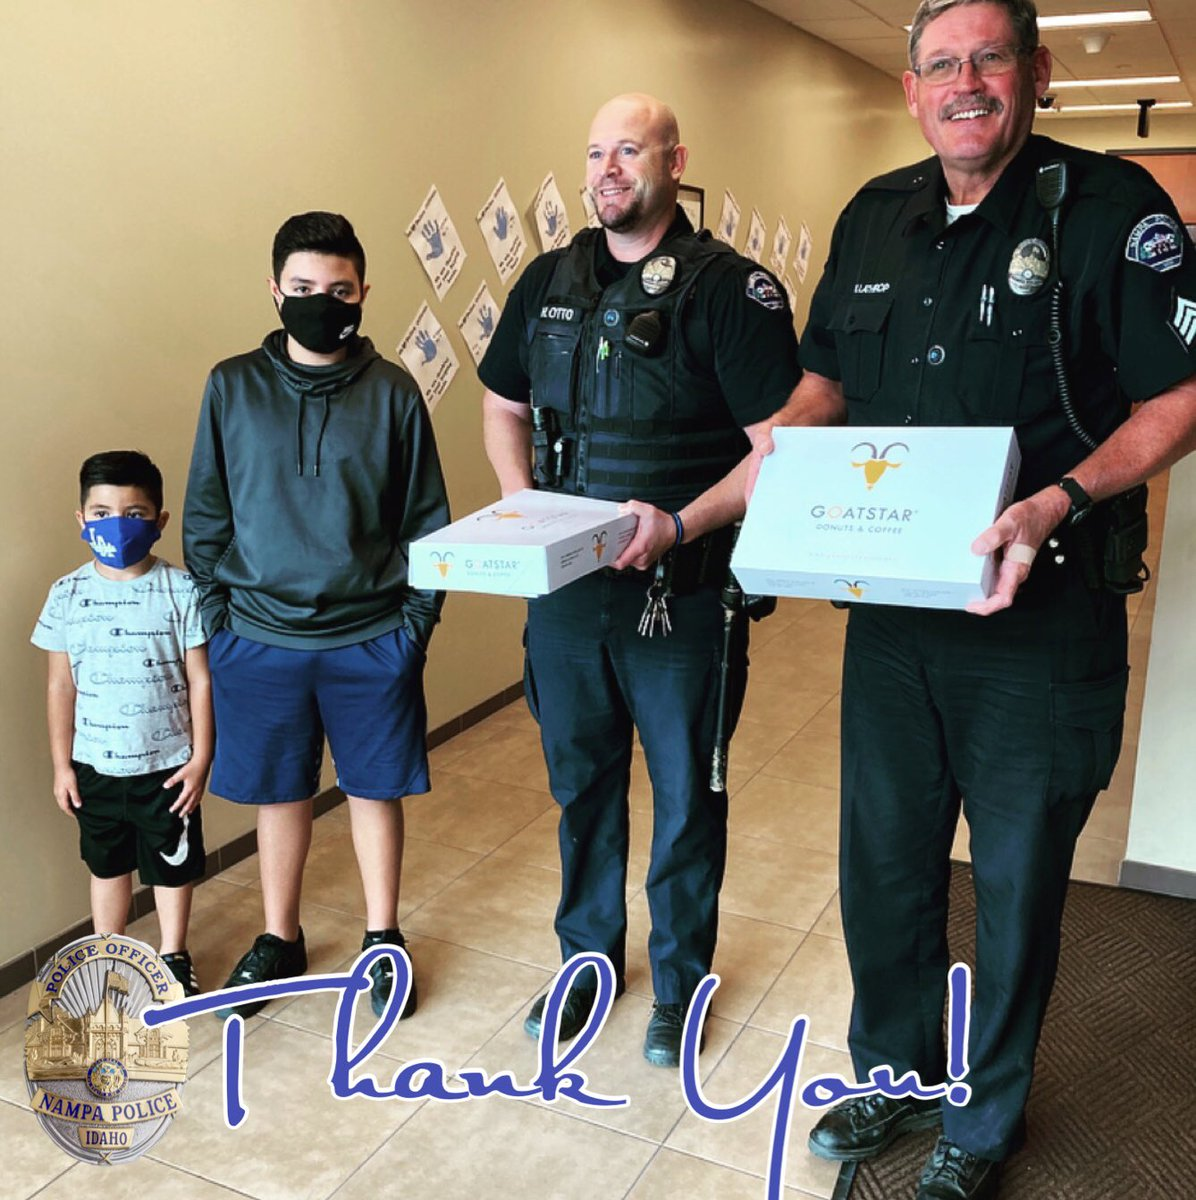 Andres and Angelo stopped by with Goatstar DONUTS for us.  How'd they know... We ❤️ 🍩??? Thanks guys (and mom!!). We enjoyed our visit and we loved the delicious treats.  #DonutMindIfIDo #DonutBeJelly #DonutJudgeMe  #ThankYou